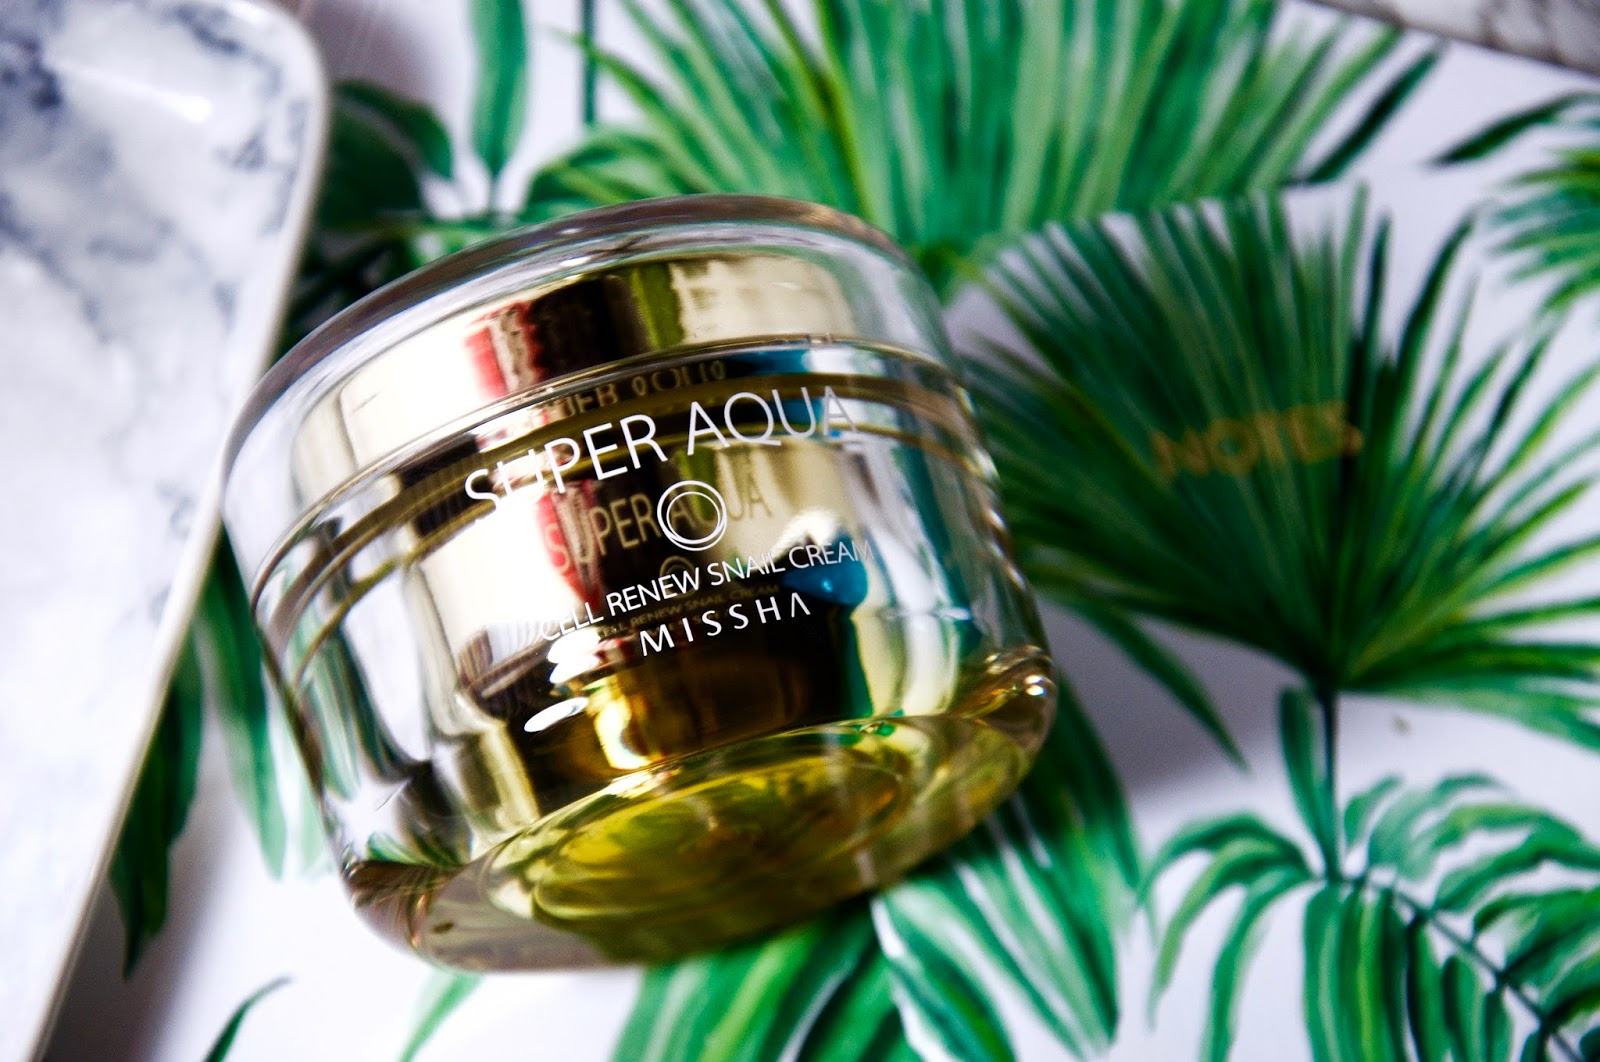 GIMME ALL THE SNAILS: A MISSHA SUPER AQUA CELL RENEW SNAIL CREAM REVIEW